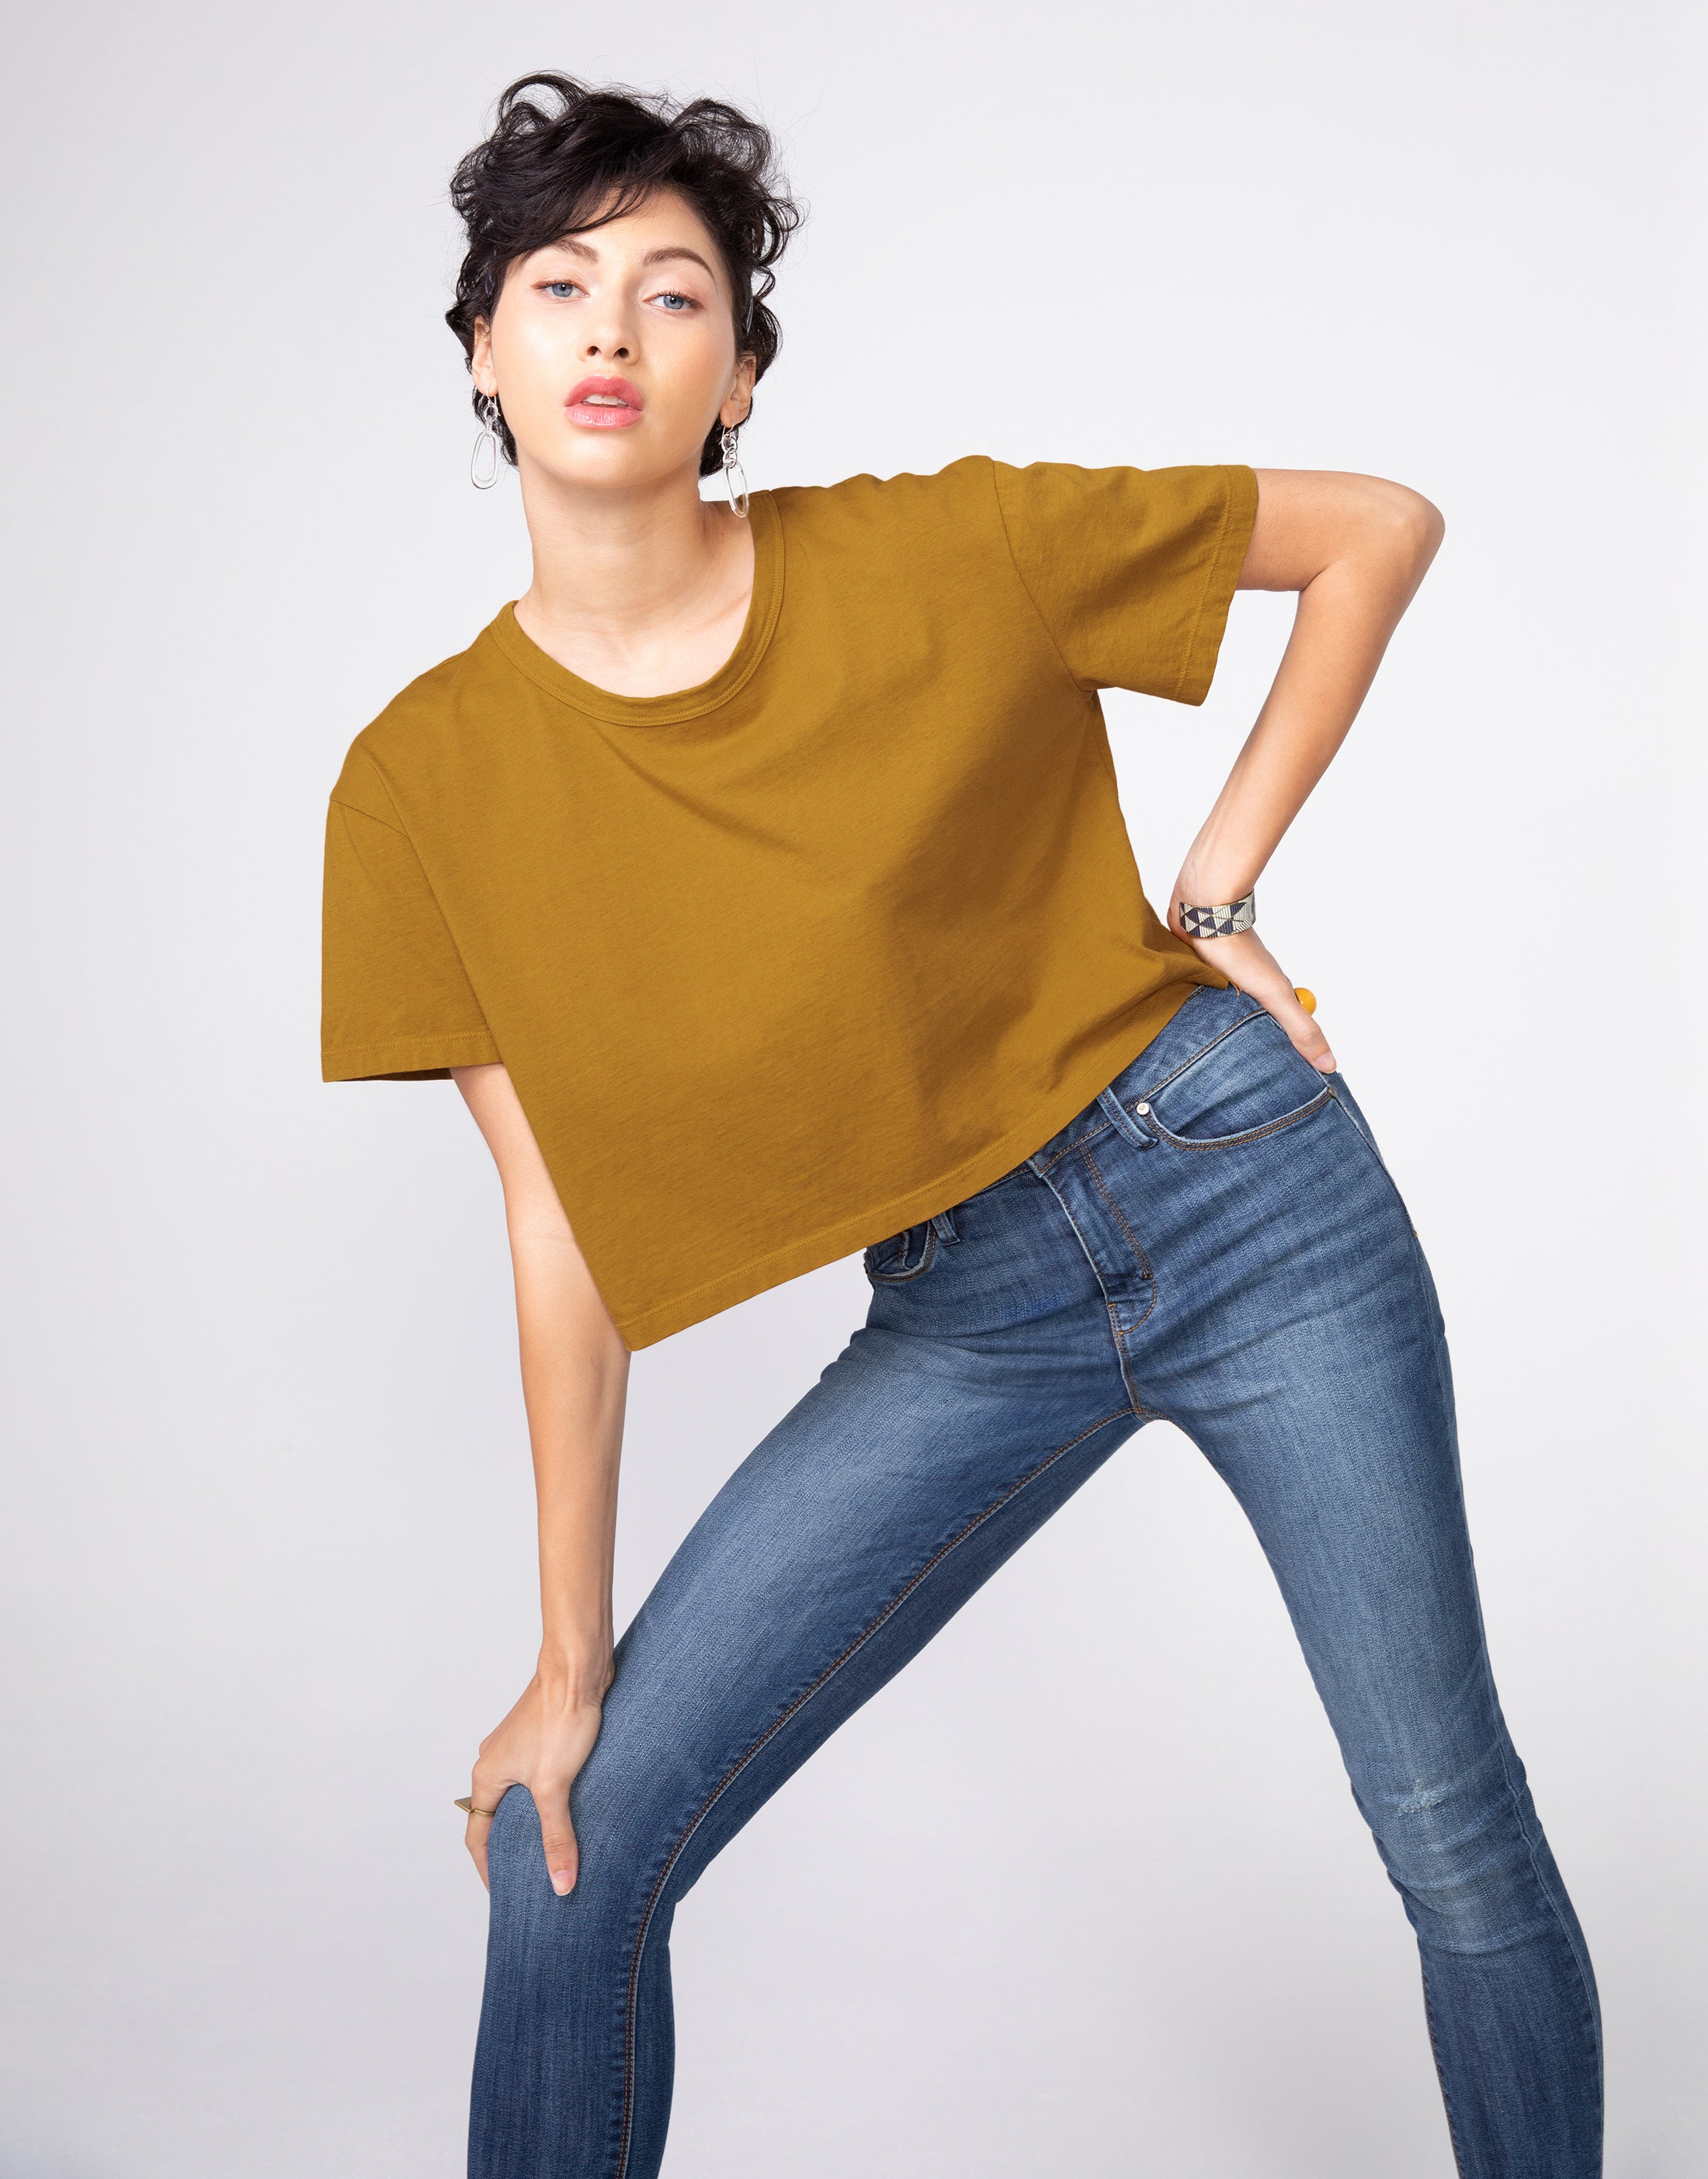 BOWIE Boxy Crop Tee in Butterscotch